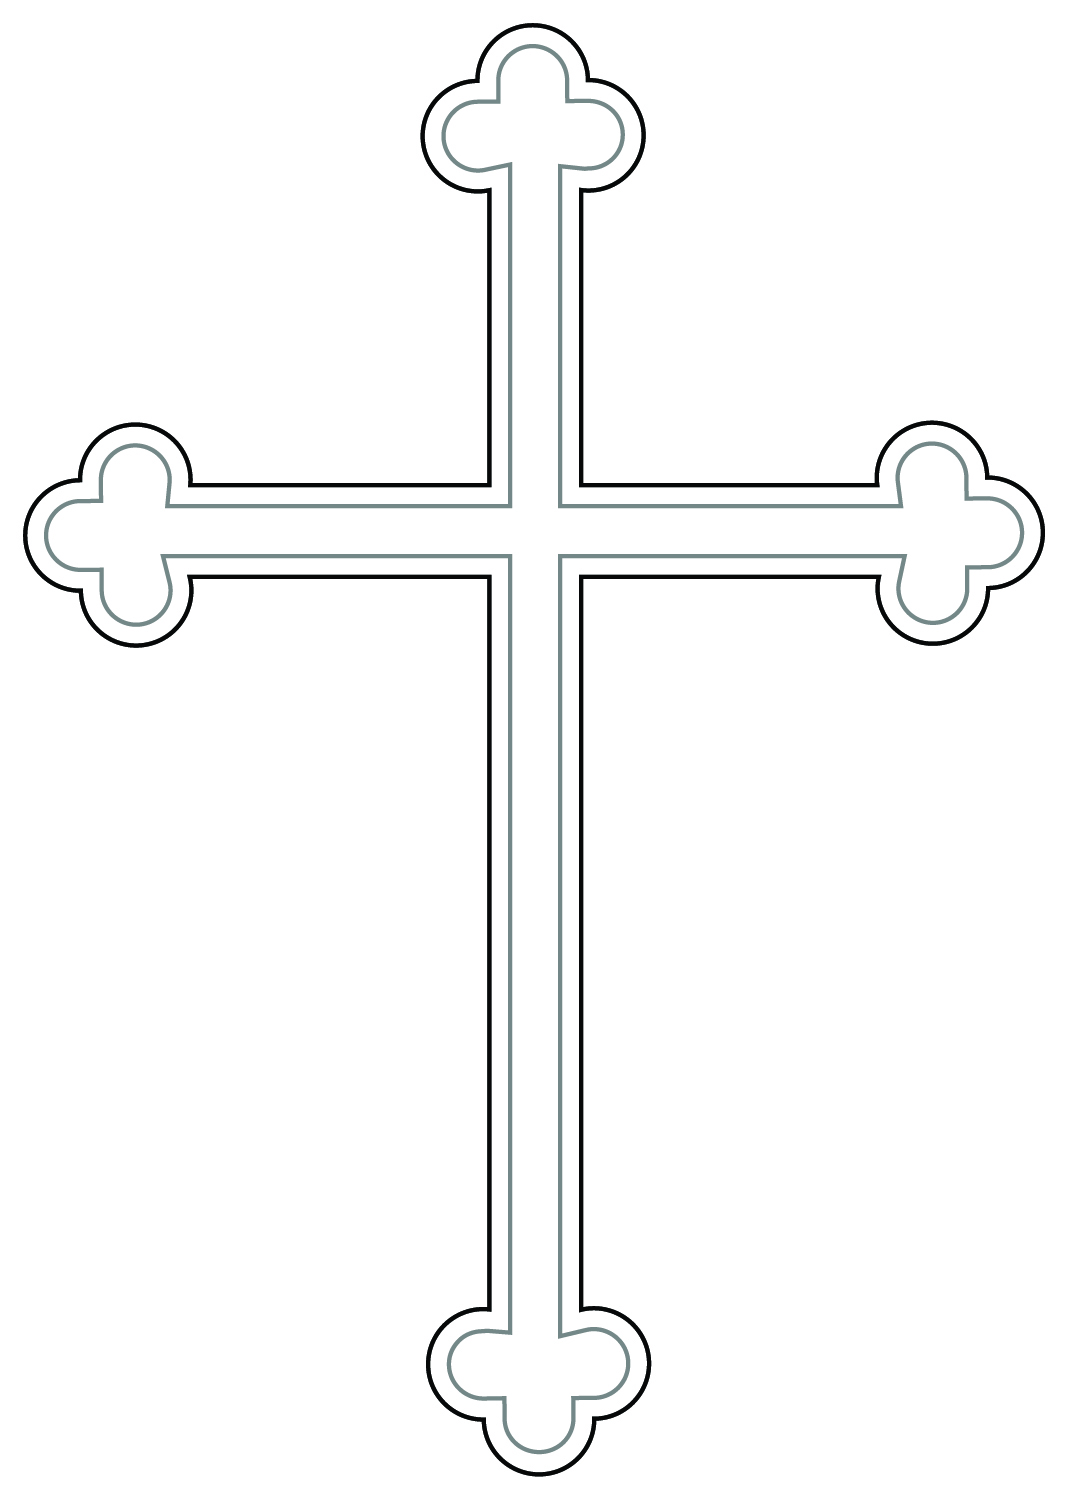 Baptism clipart gold cross jpeg black and white download Free Baptism Cross Cliparts, Download Free Clip Art, Free Clip Art ... black and white download